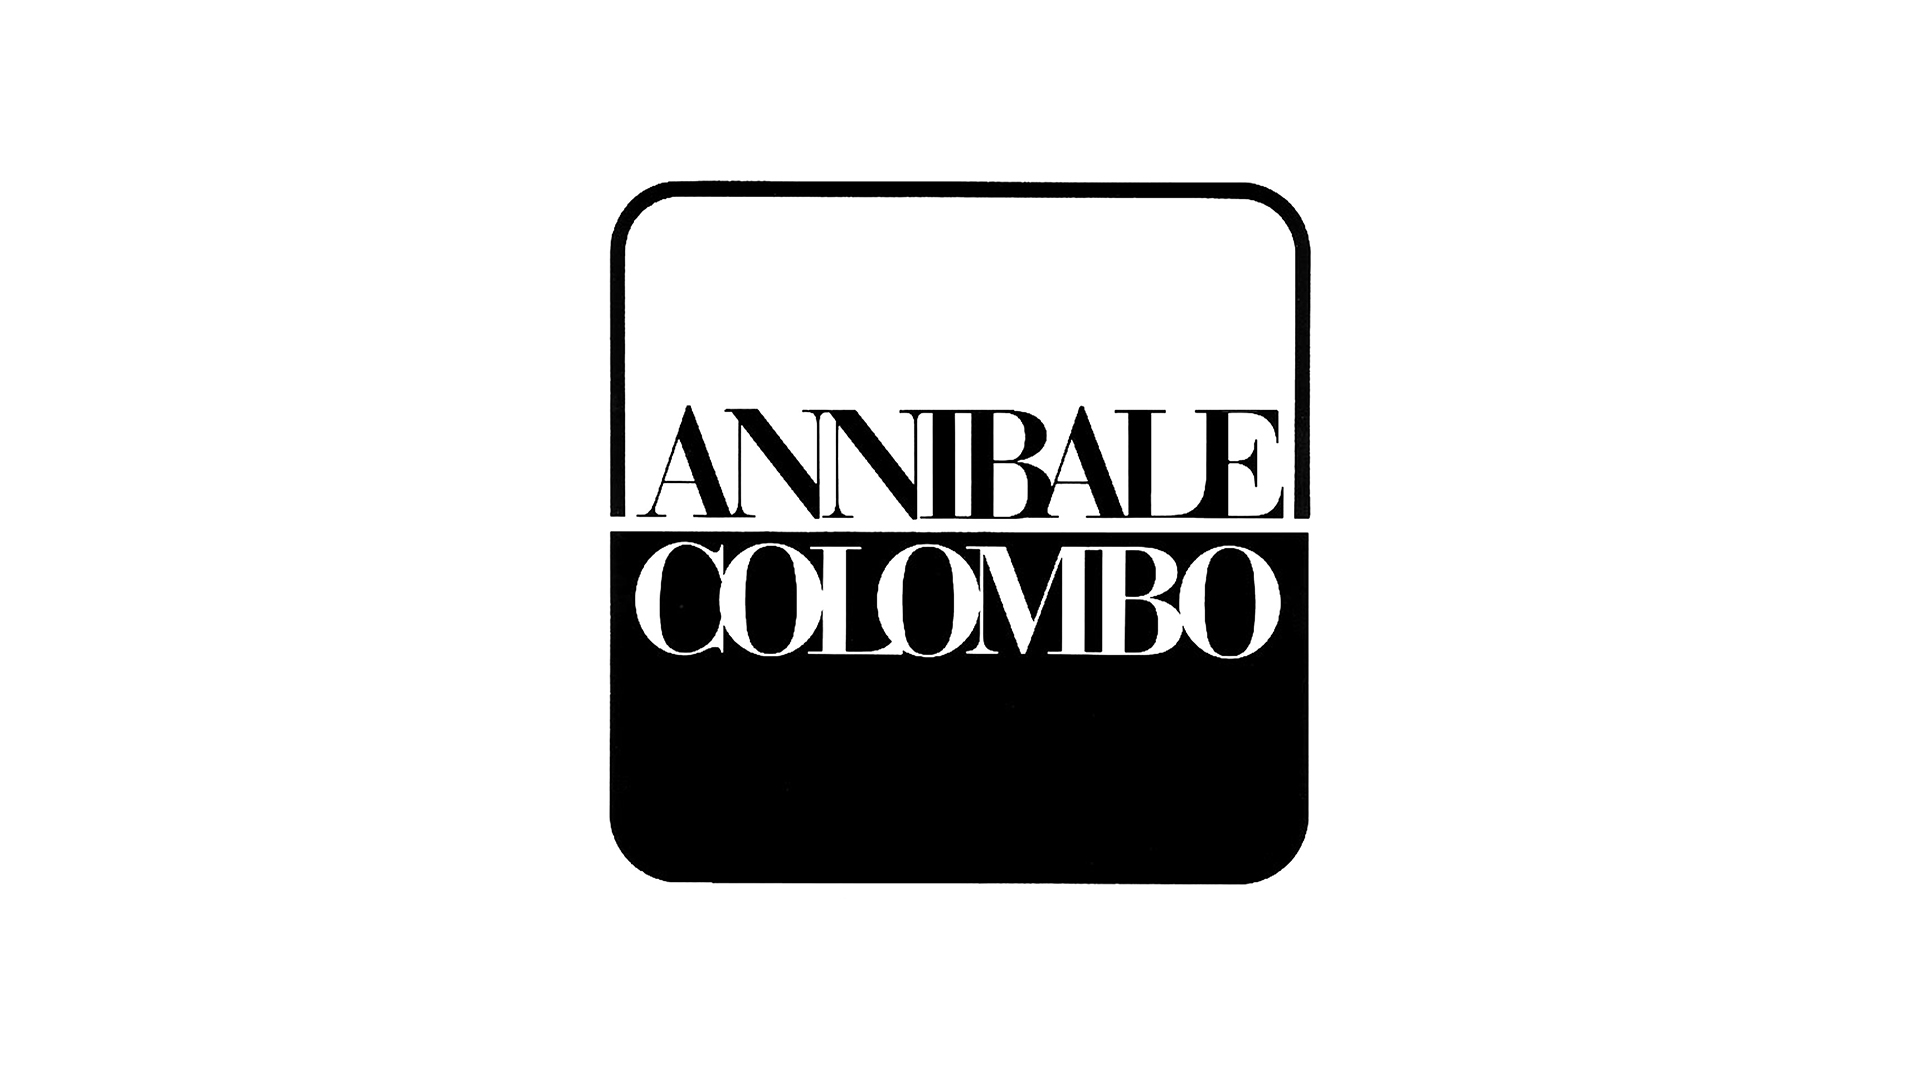 Annibale Colombo